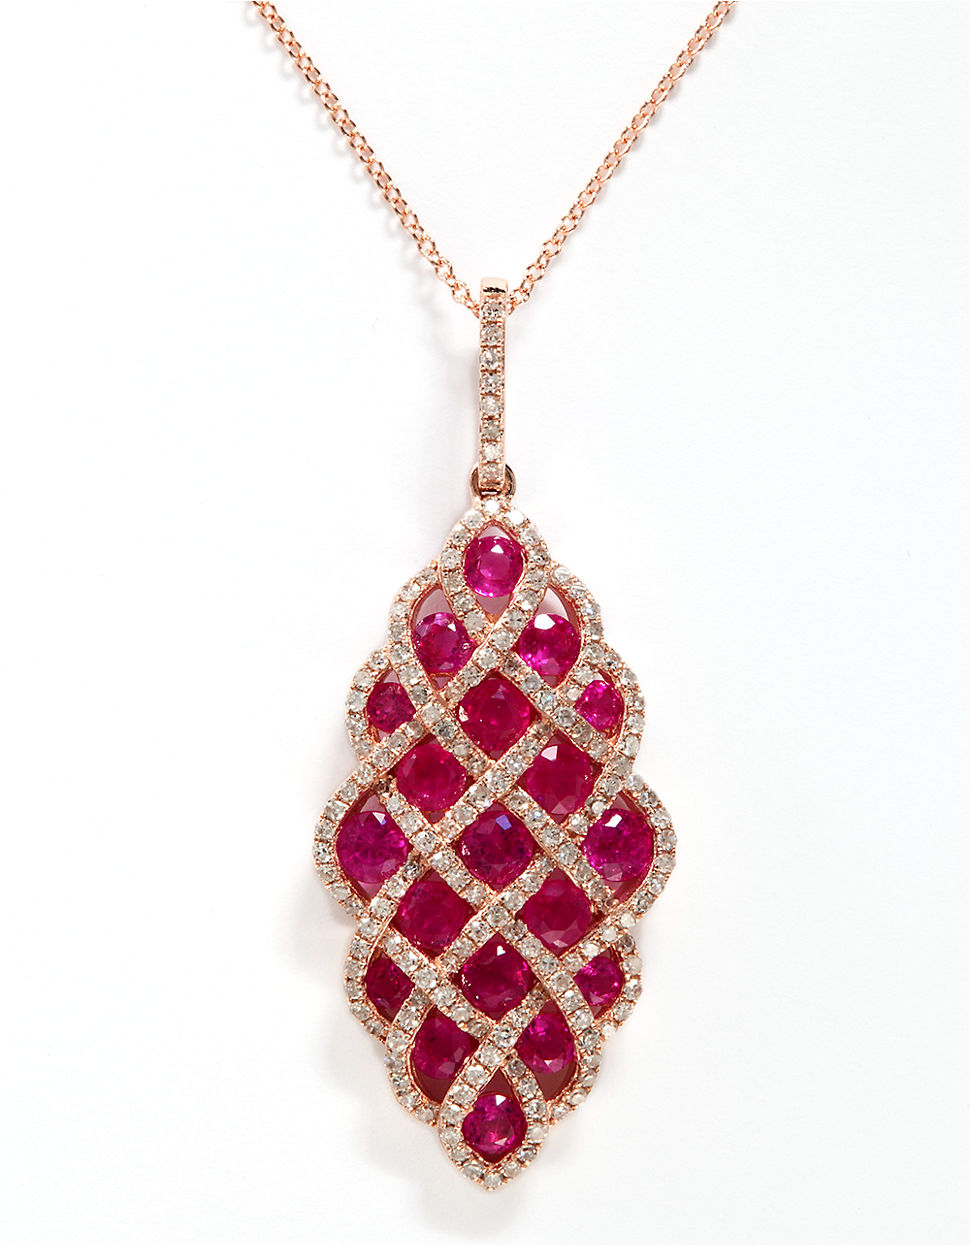 pendant heart diamond beautiful necklace ruby red with in rg gold fd jewelry nl design rose